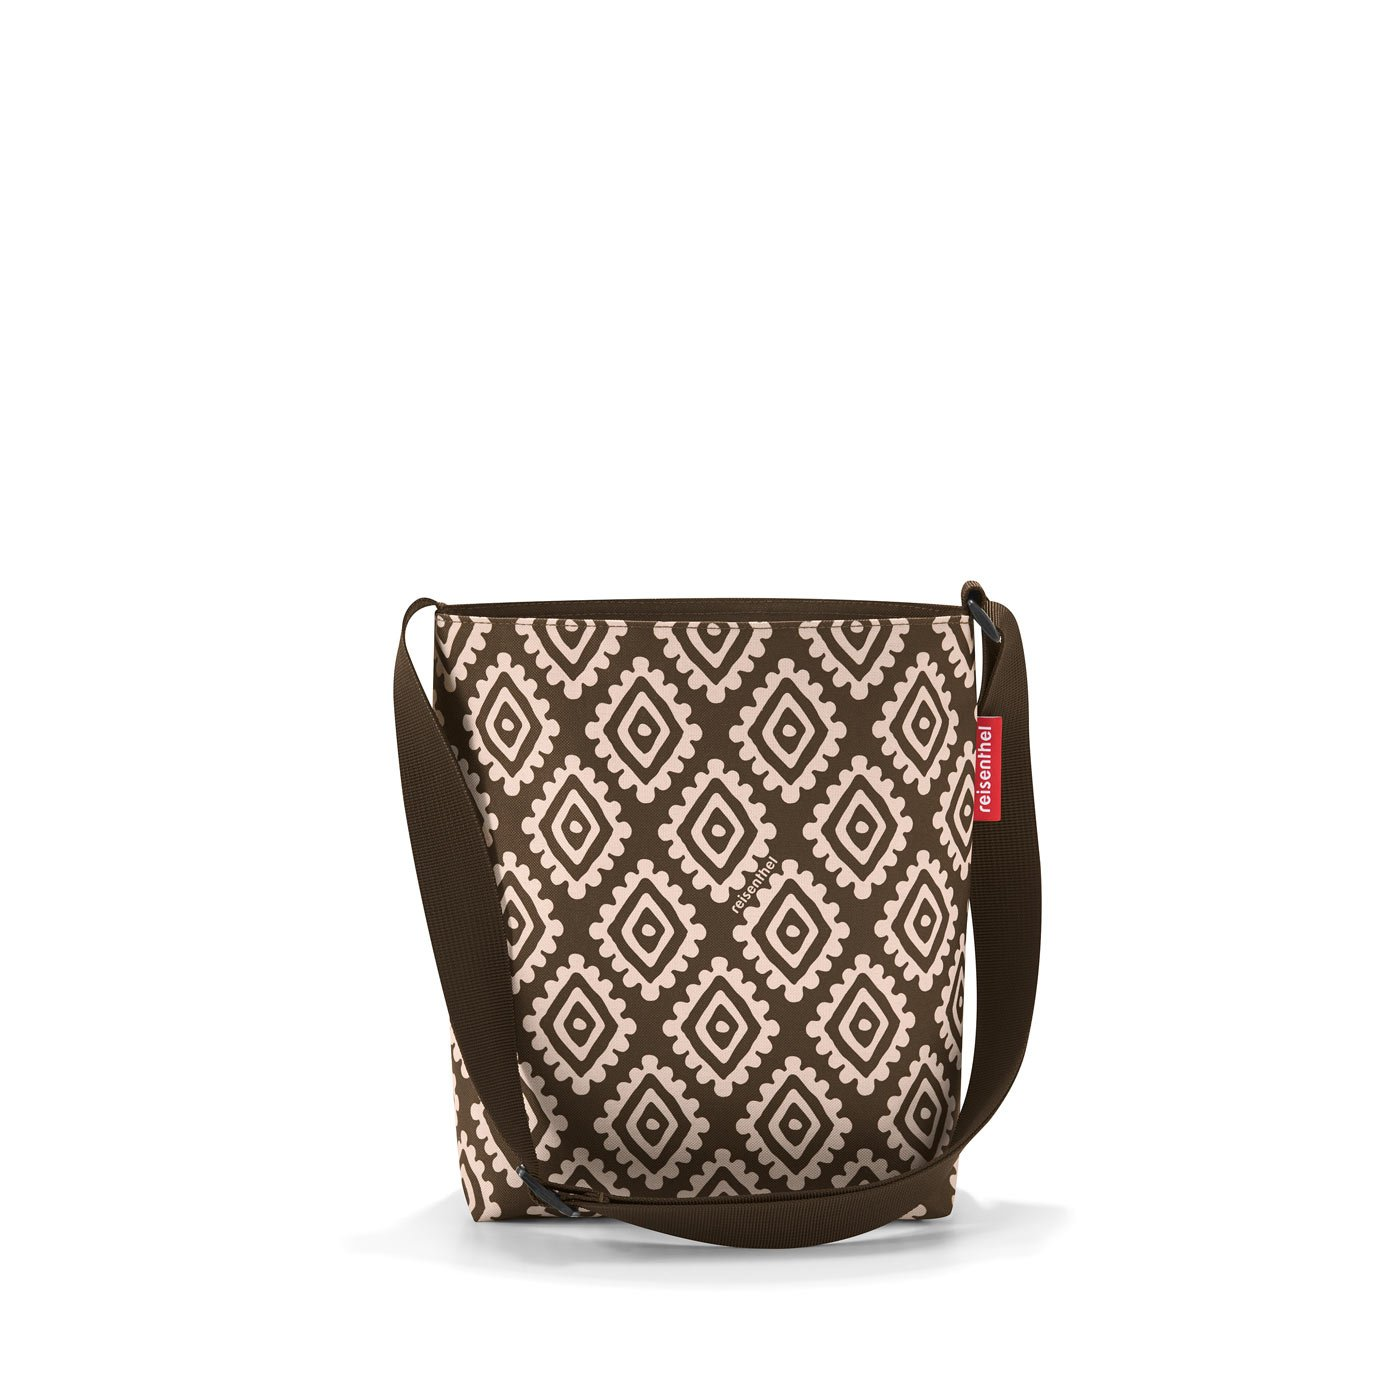 reisenthel shoulderbag S Diamonds Mocha Maße: 29 x 28,5 x 7,5 cm/Volumen: 4,7 l